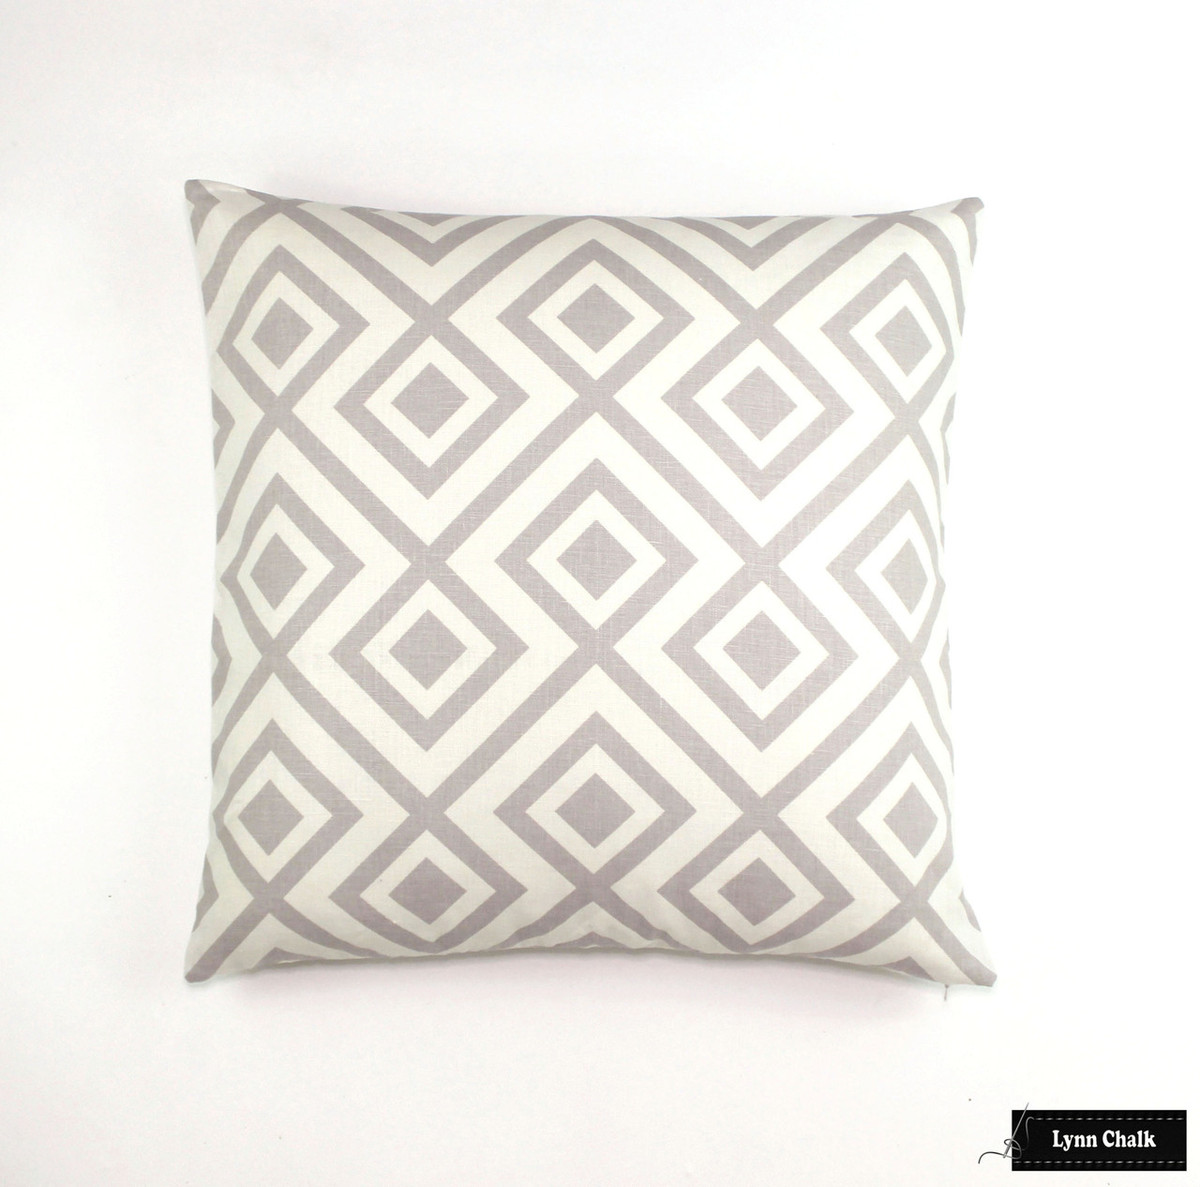 Pillow in David Hicks La Fiorentina Light Grey 7 Colors